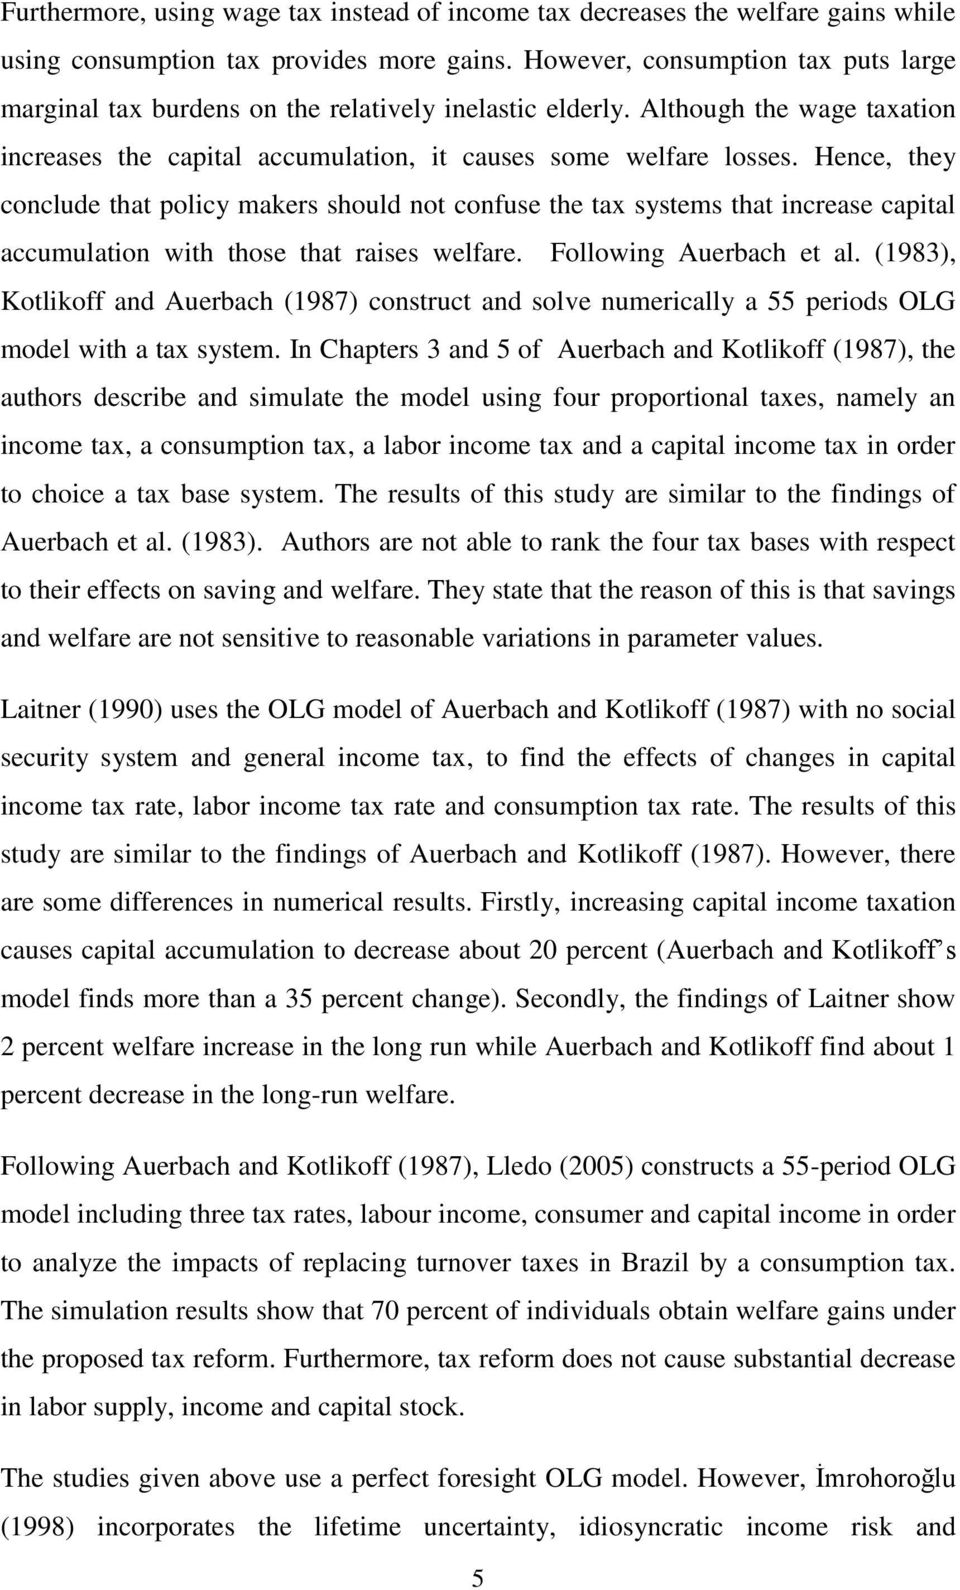 Hence, they conclude that policy makers should not confuse the tax systems that increase capital accumulation with those that raises welfare. Following Auerbach et al.